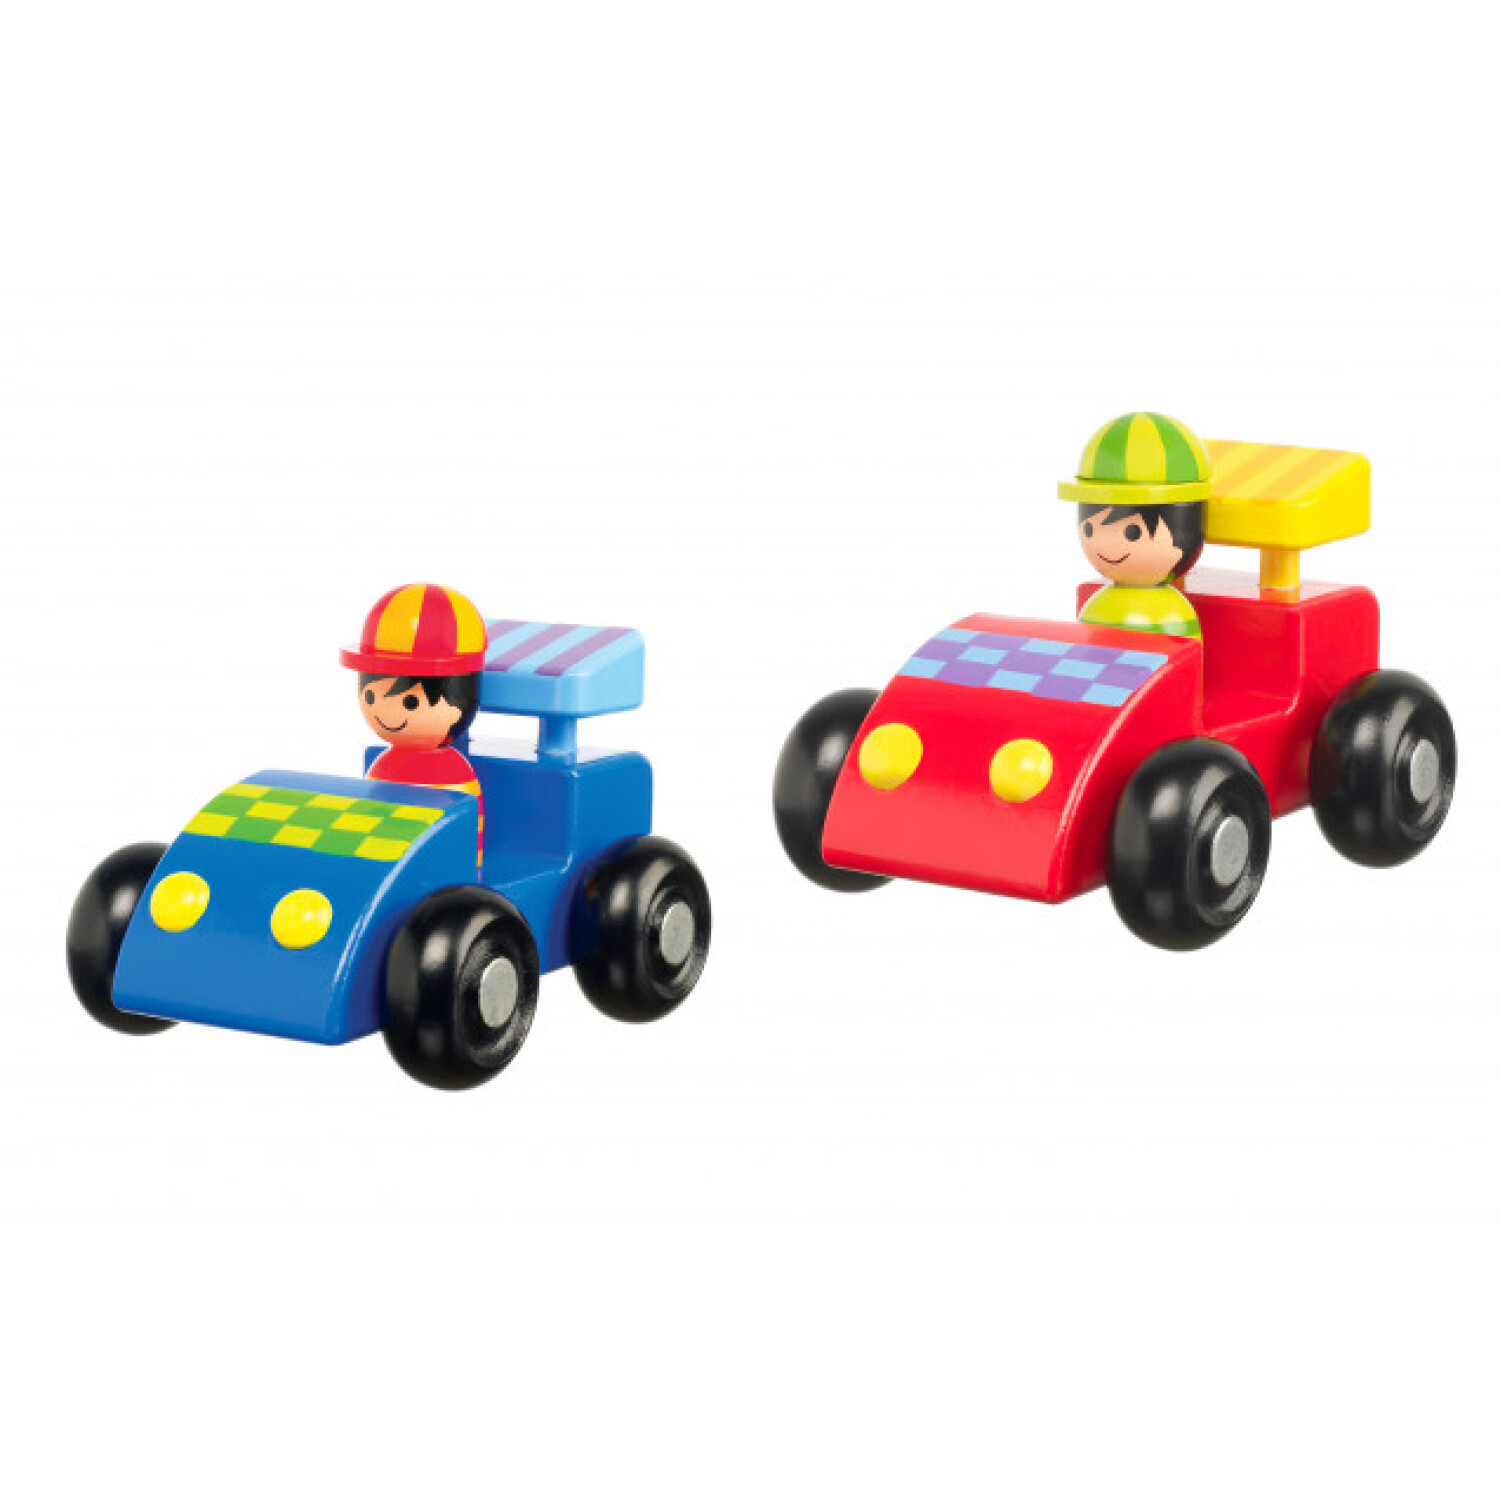 Orange Tree Toys Wooden Racing Car Set of 2 with Drivers Moving Wheels